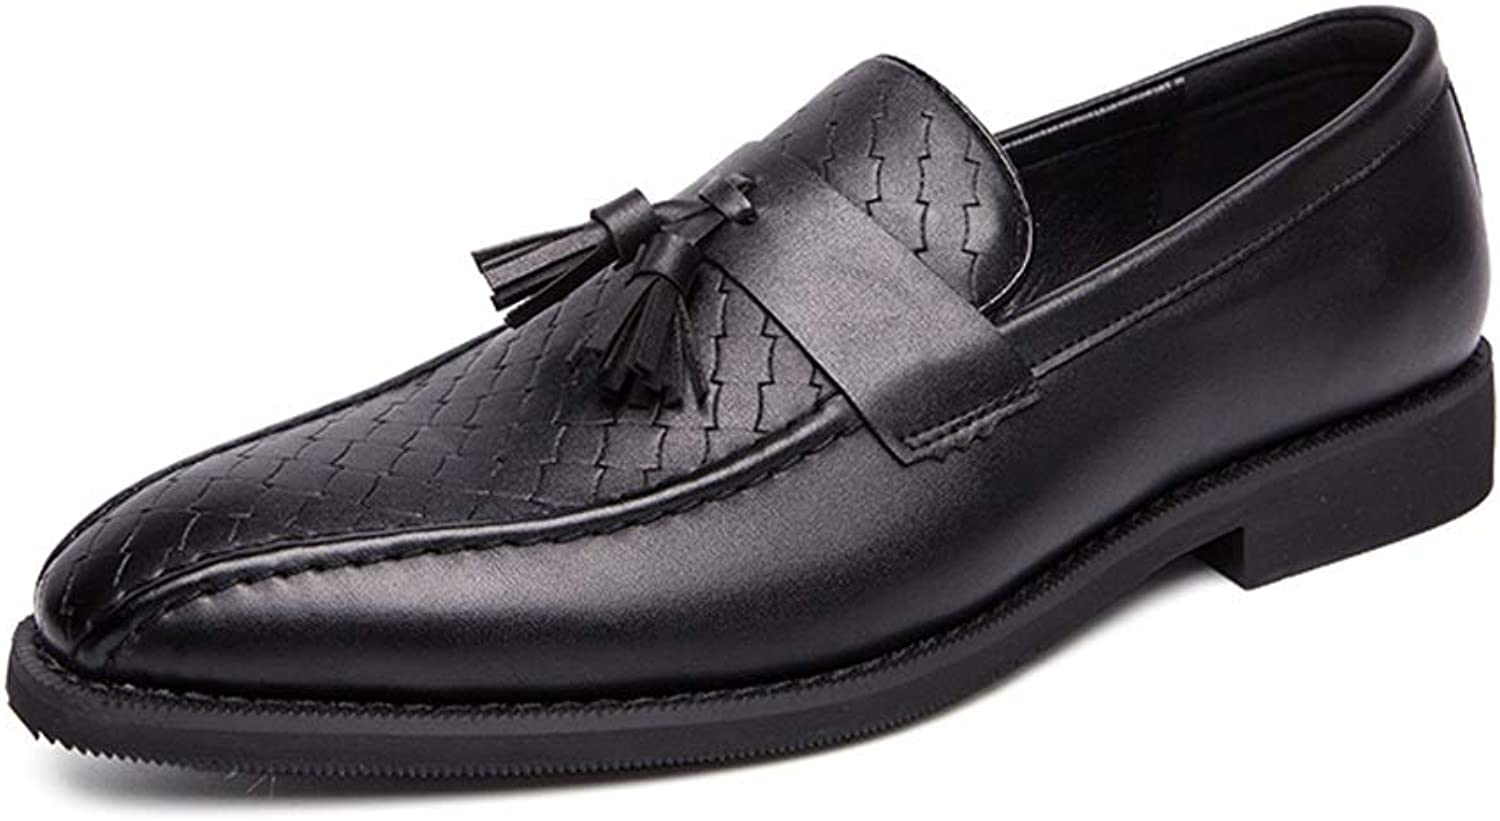 Gobling Oxford shoes for Men Formal shoes Slip On Style OX Leather Delicate Texture with Classic Tassel Fashion Driving Loafers Casual Flexible Personality Texture Simple Round Toe Boat Moccasins